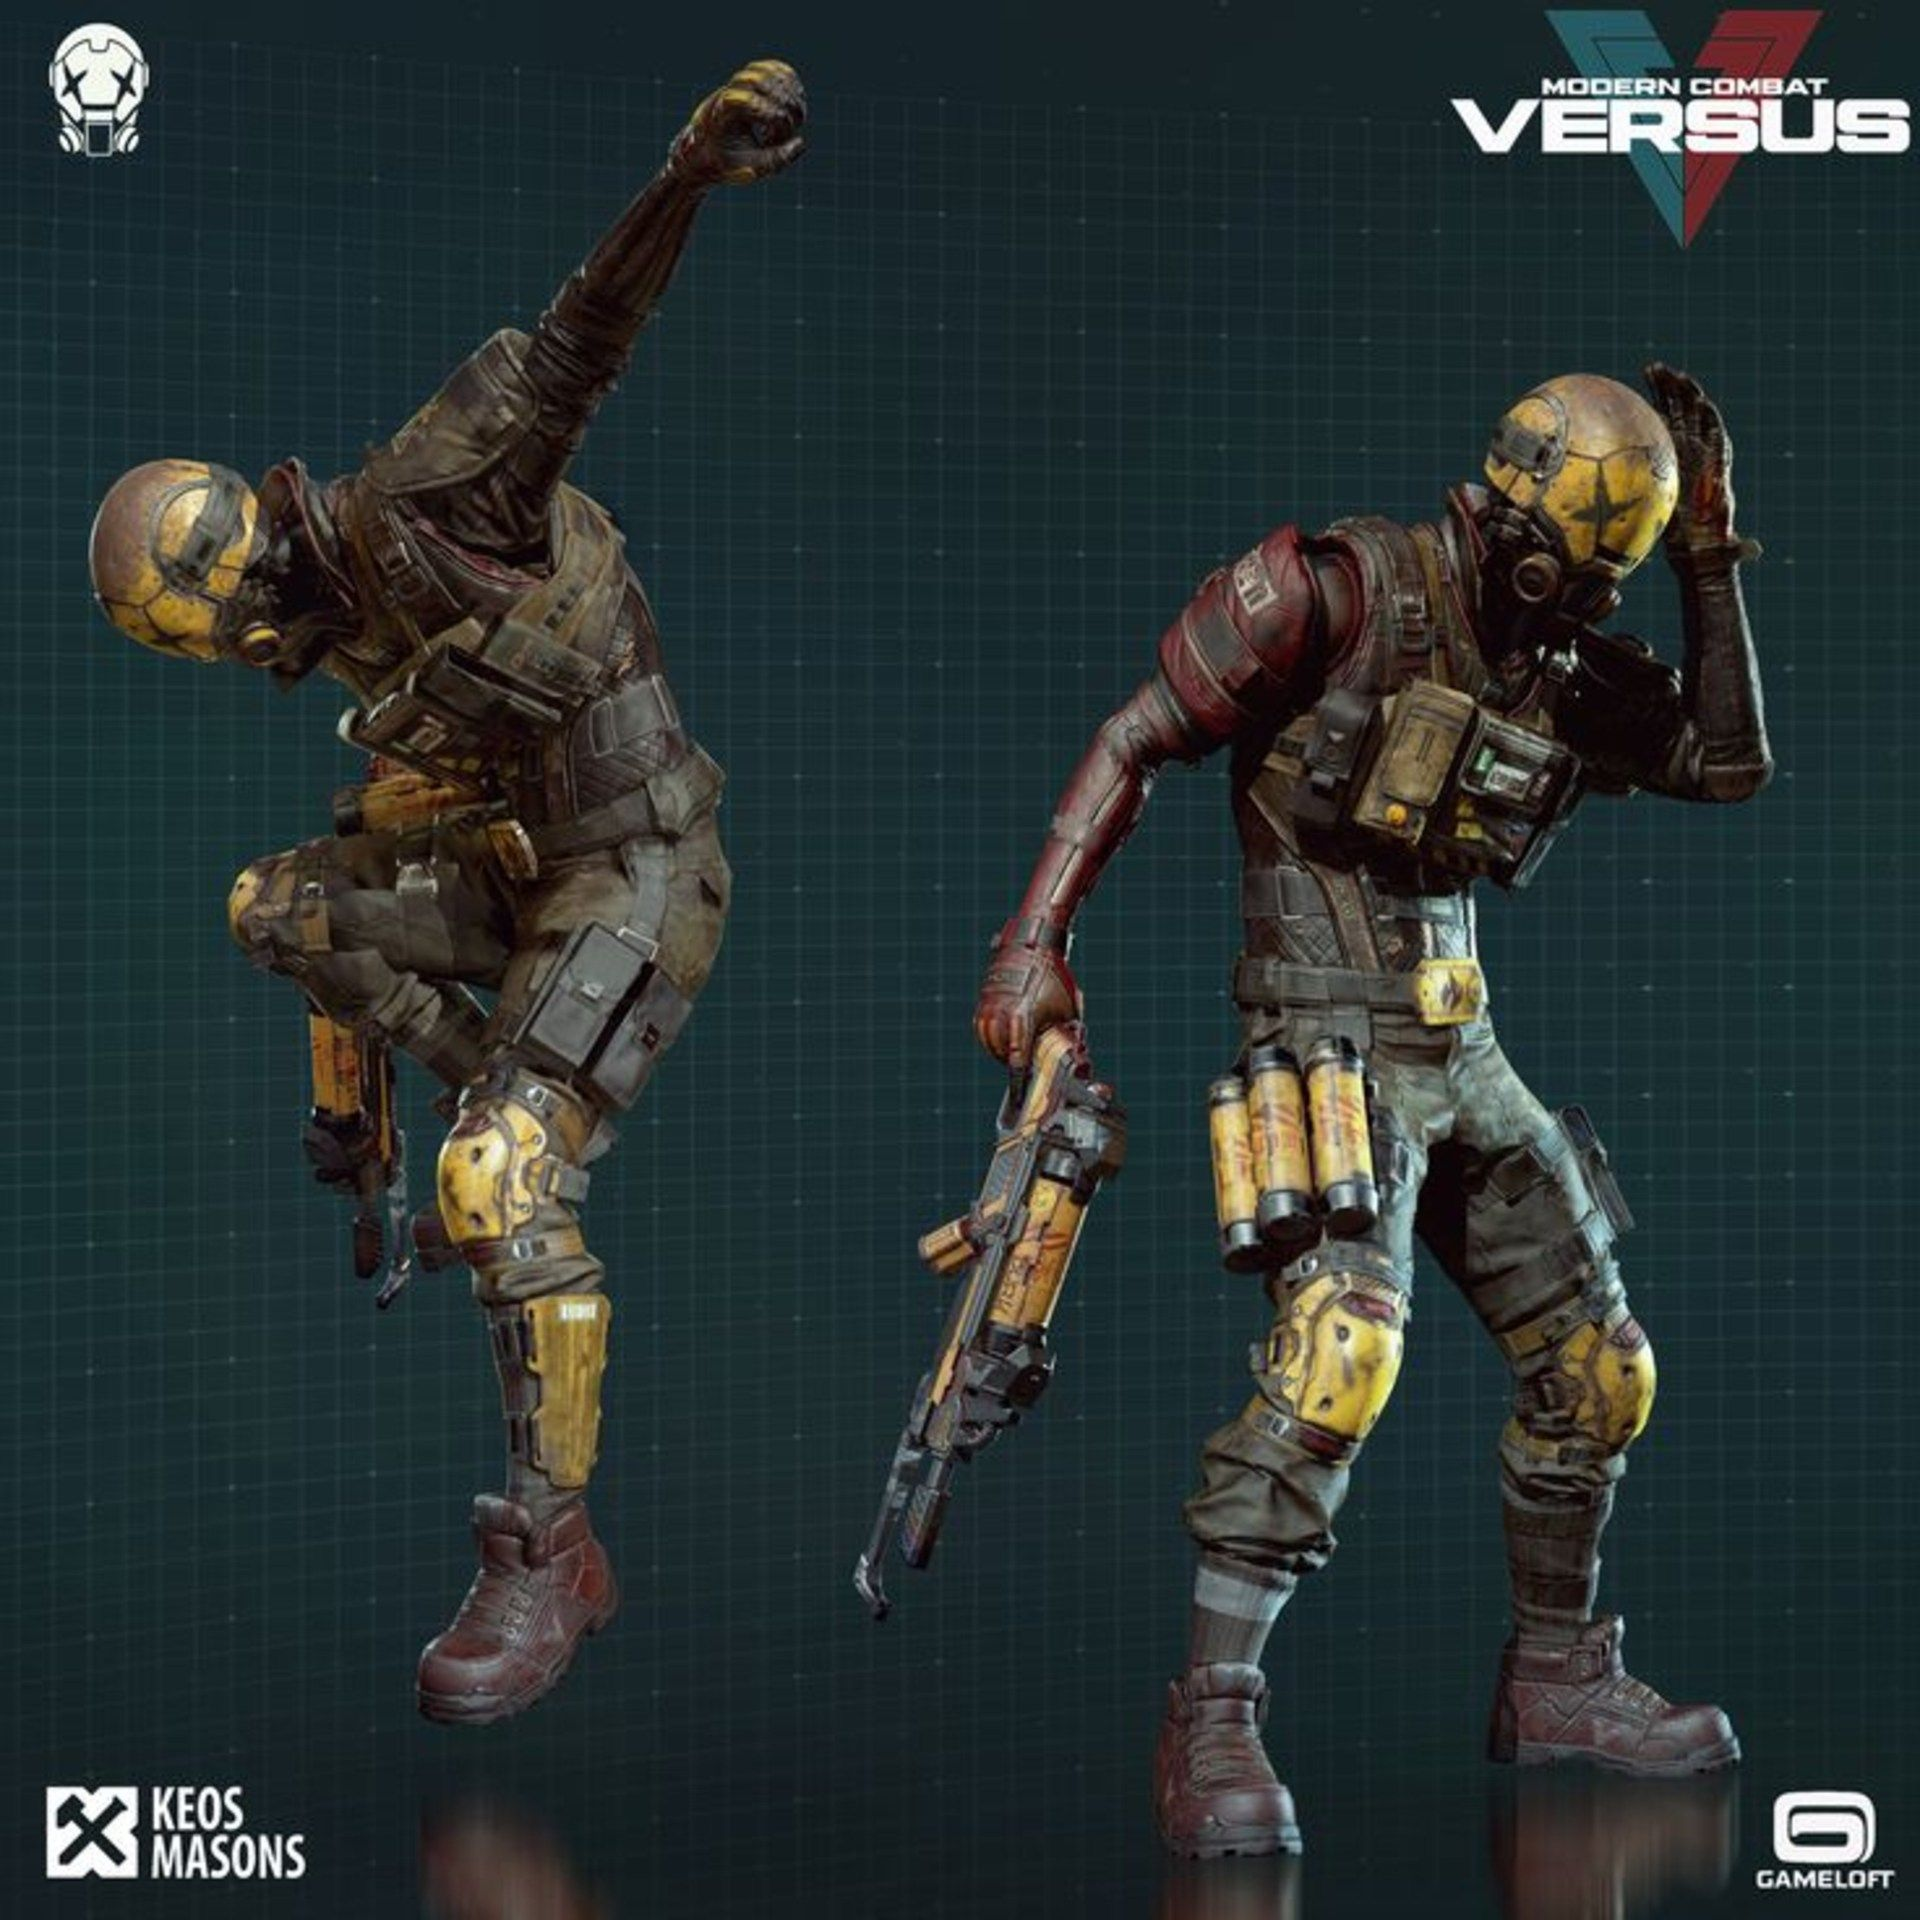 Android Mobiles Full Hd Resolutions 1080 X Modern Combat Versus Characters Hd Wallpaper Download Character Combat Gameloft